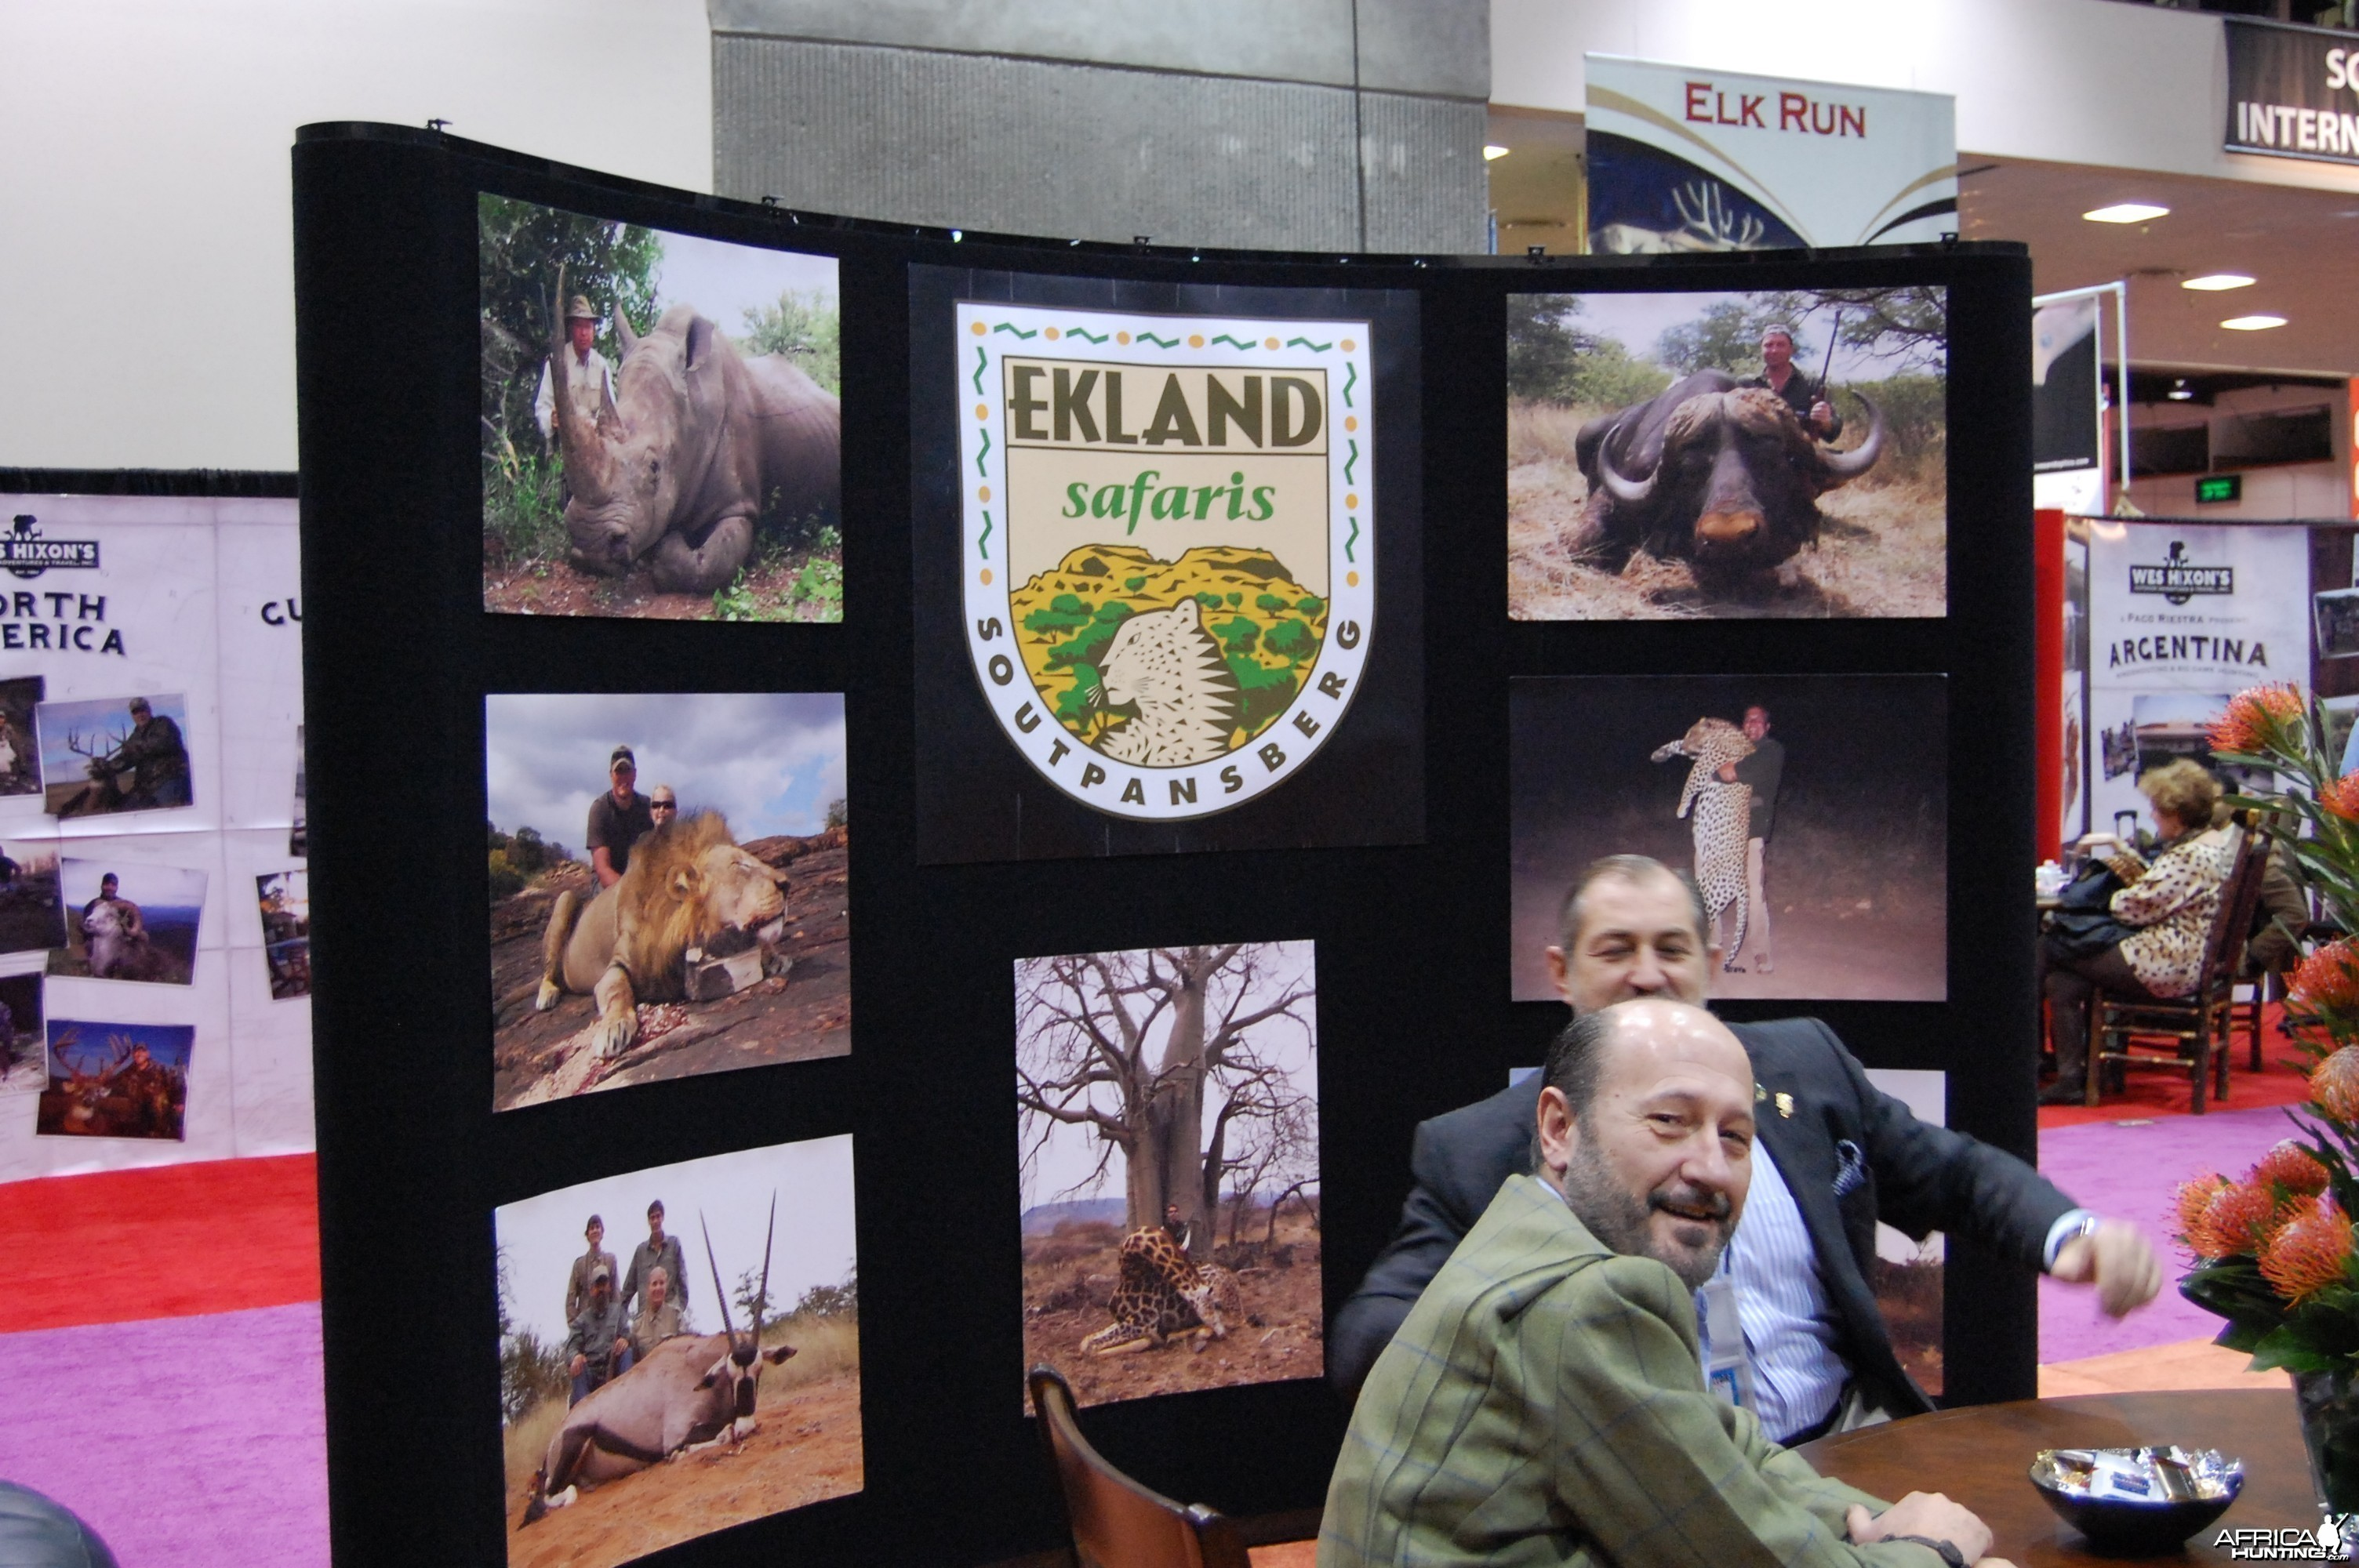 Ekland Safaris